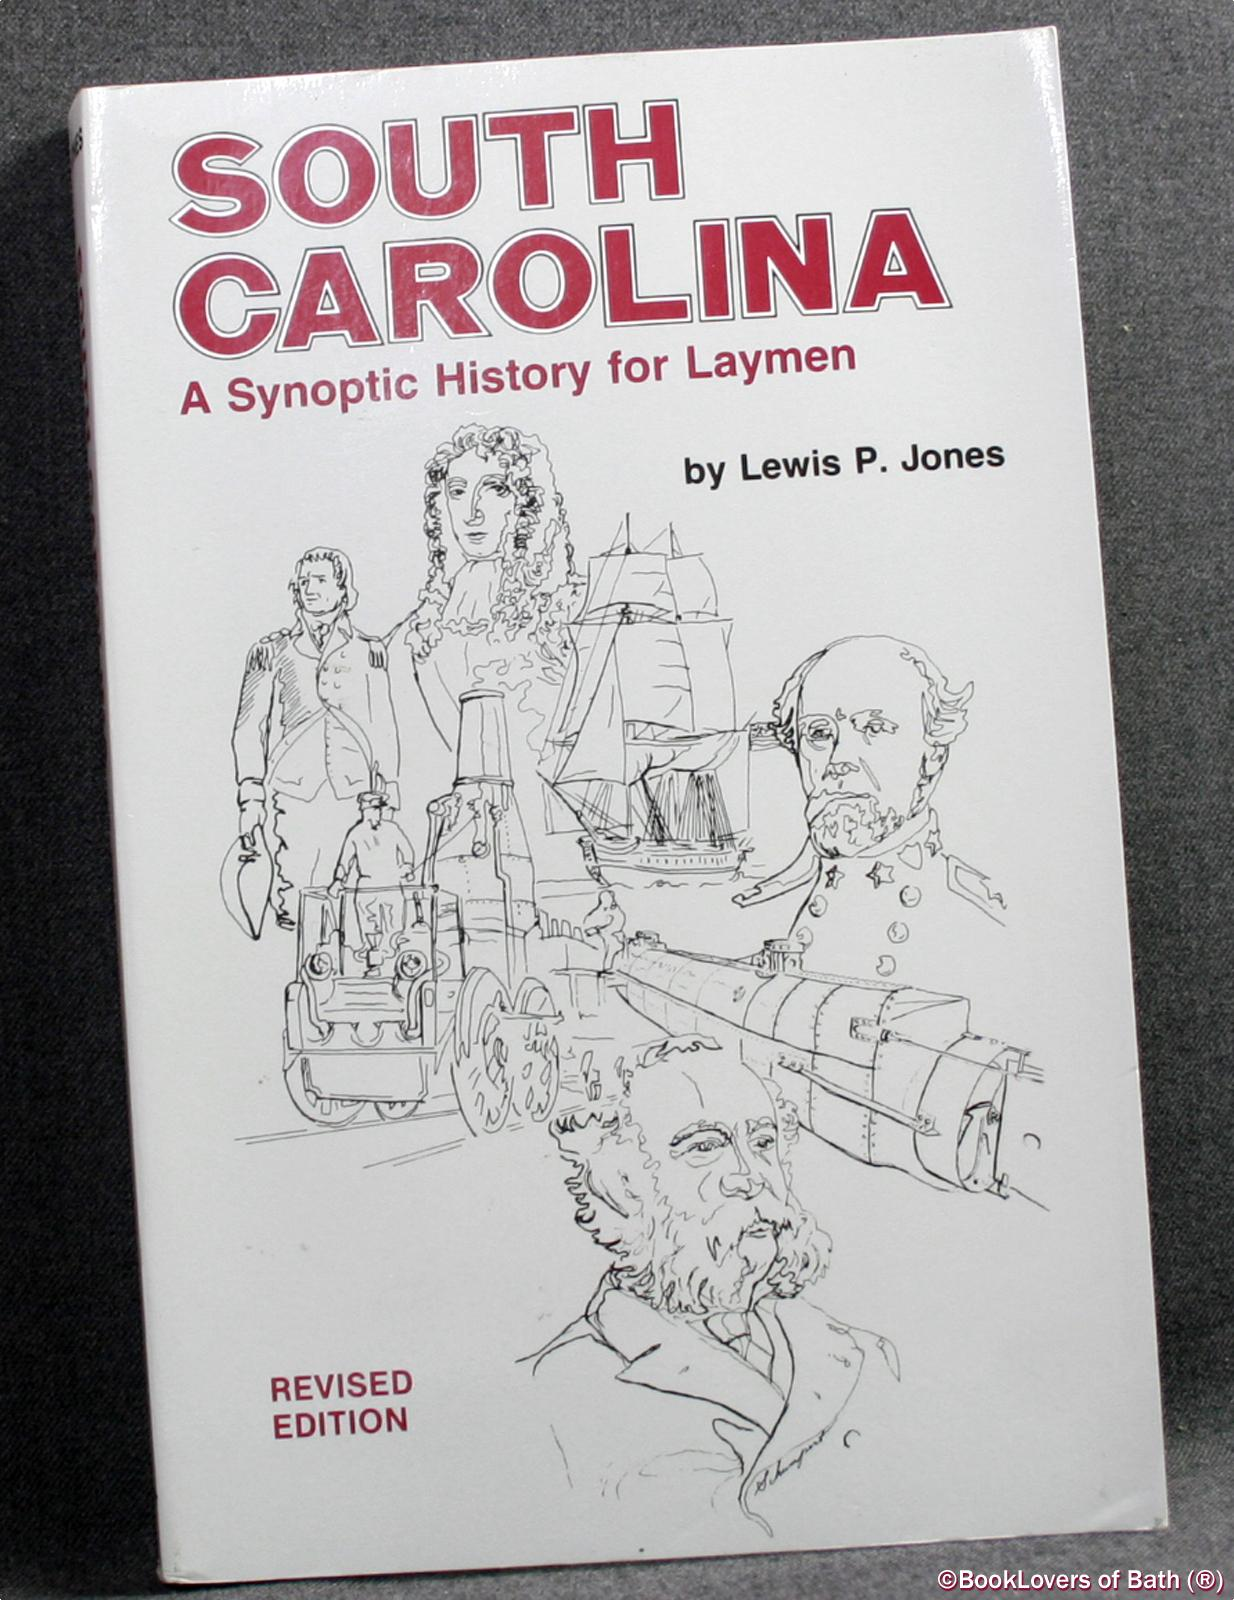 South Carolina: A Synoptic History for Laymen - Lewis P. Jones